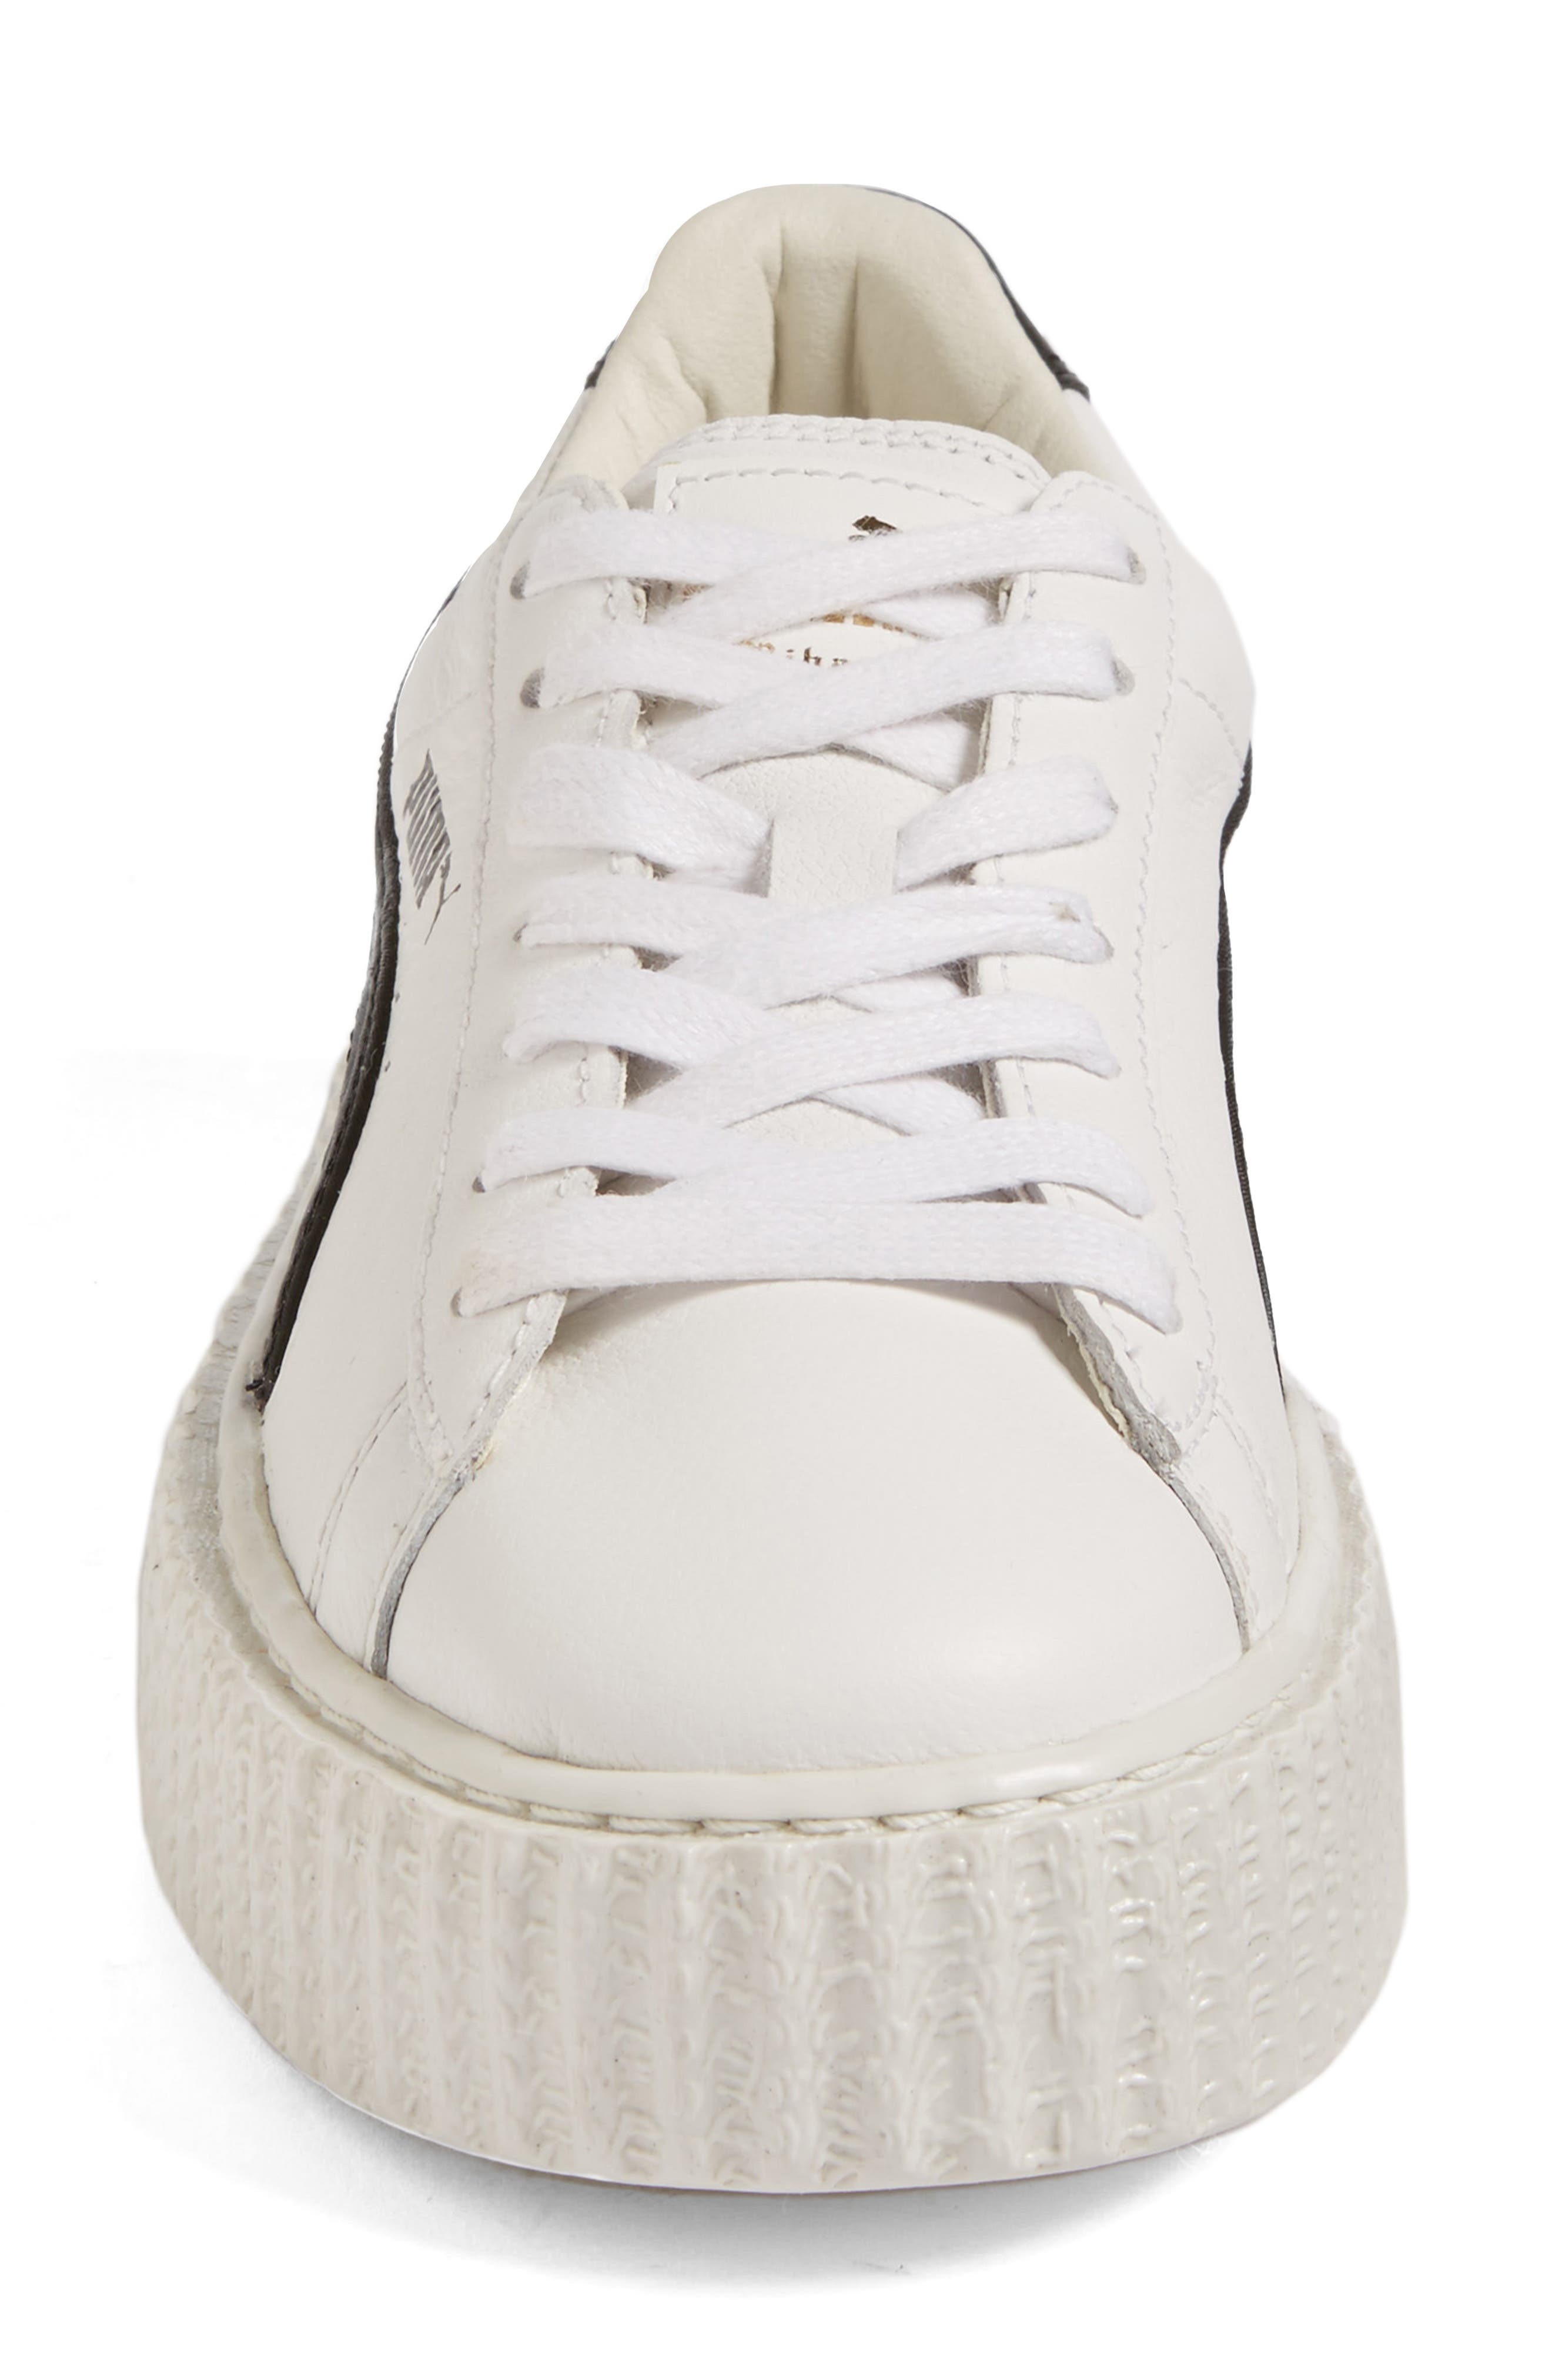 FENTY PUMA by Rihanna Creeper Sneaker,                             Alternate thumbnail 4, color,                             White Leather